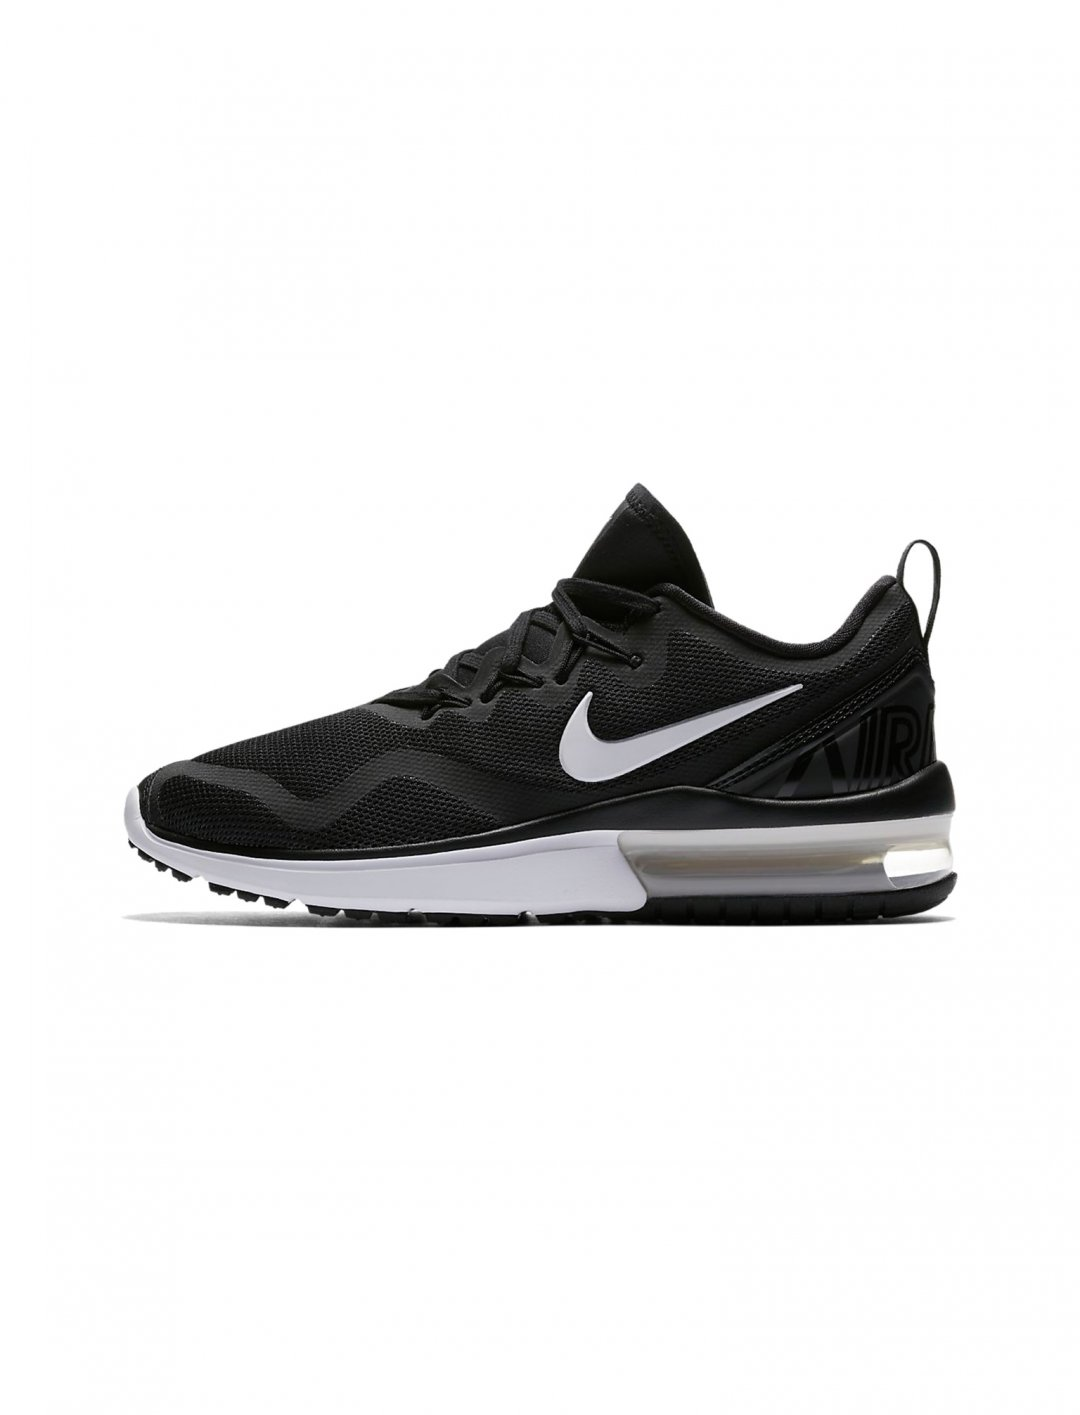 "Nike Running Air Max Fury Trainers {""id"":12,""product_section_id"":1,""name"":""Shoes"",""order"":12} Nike"